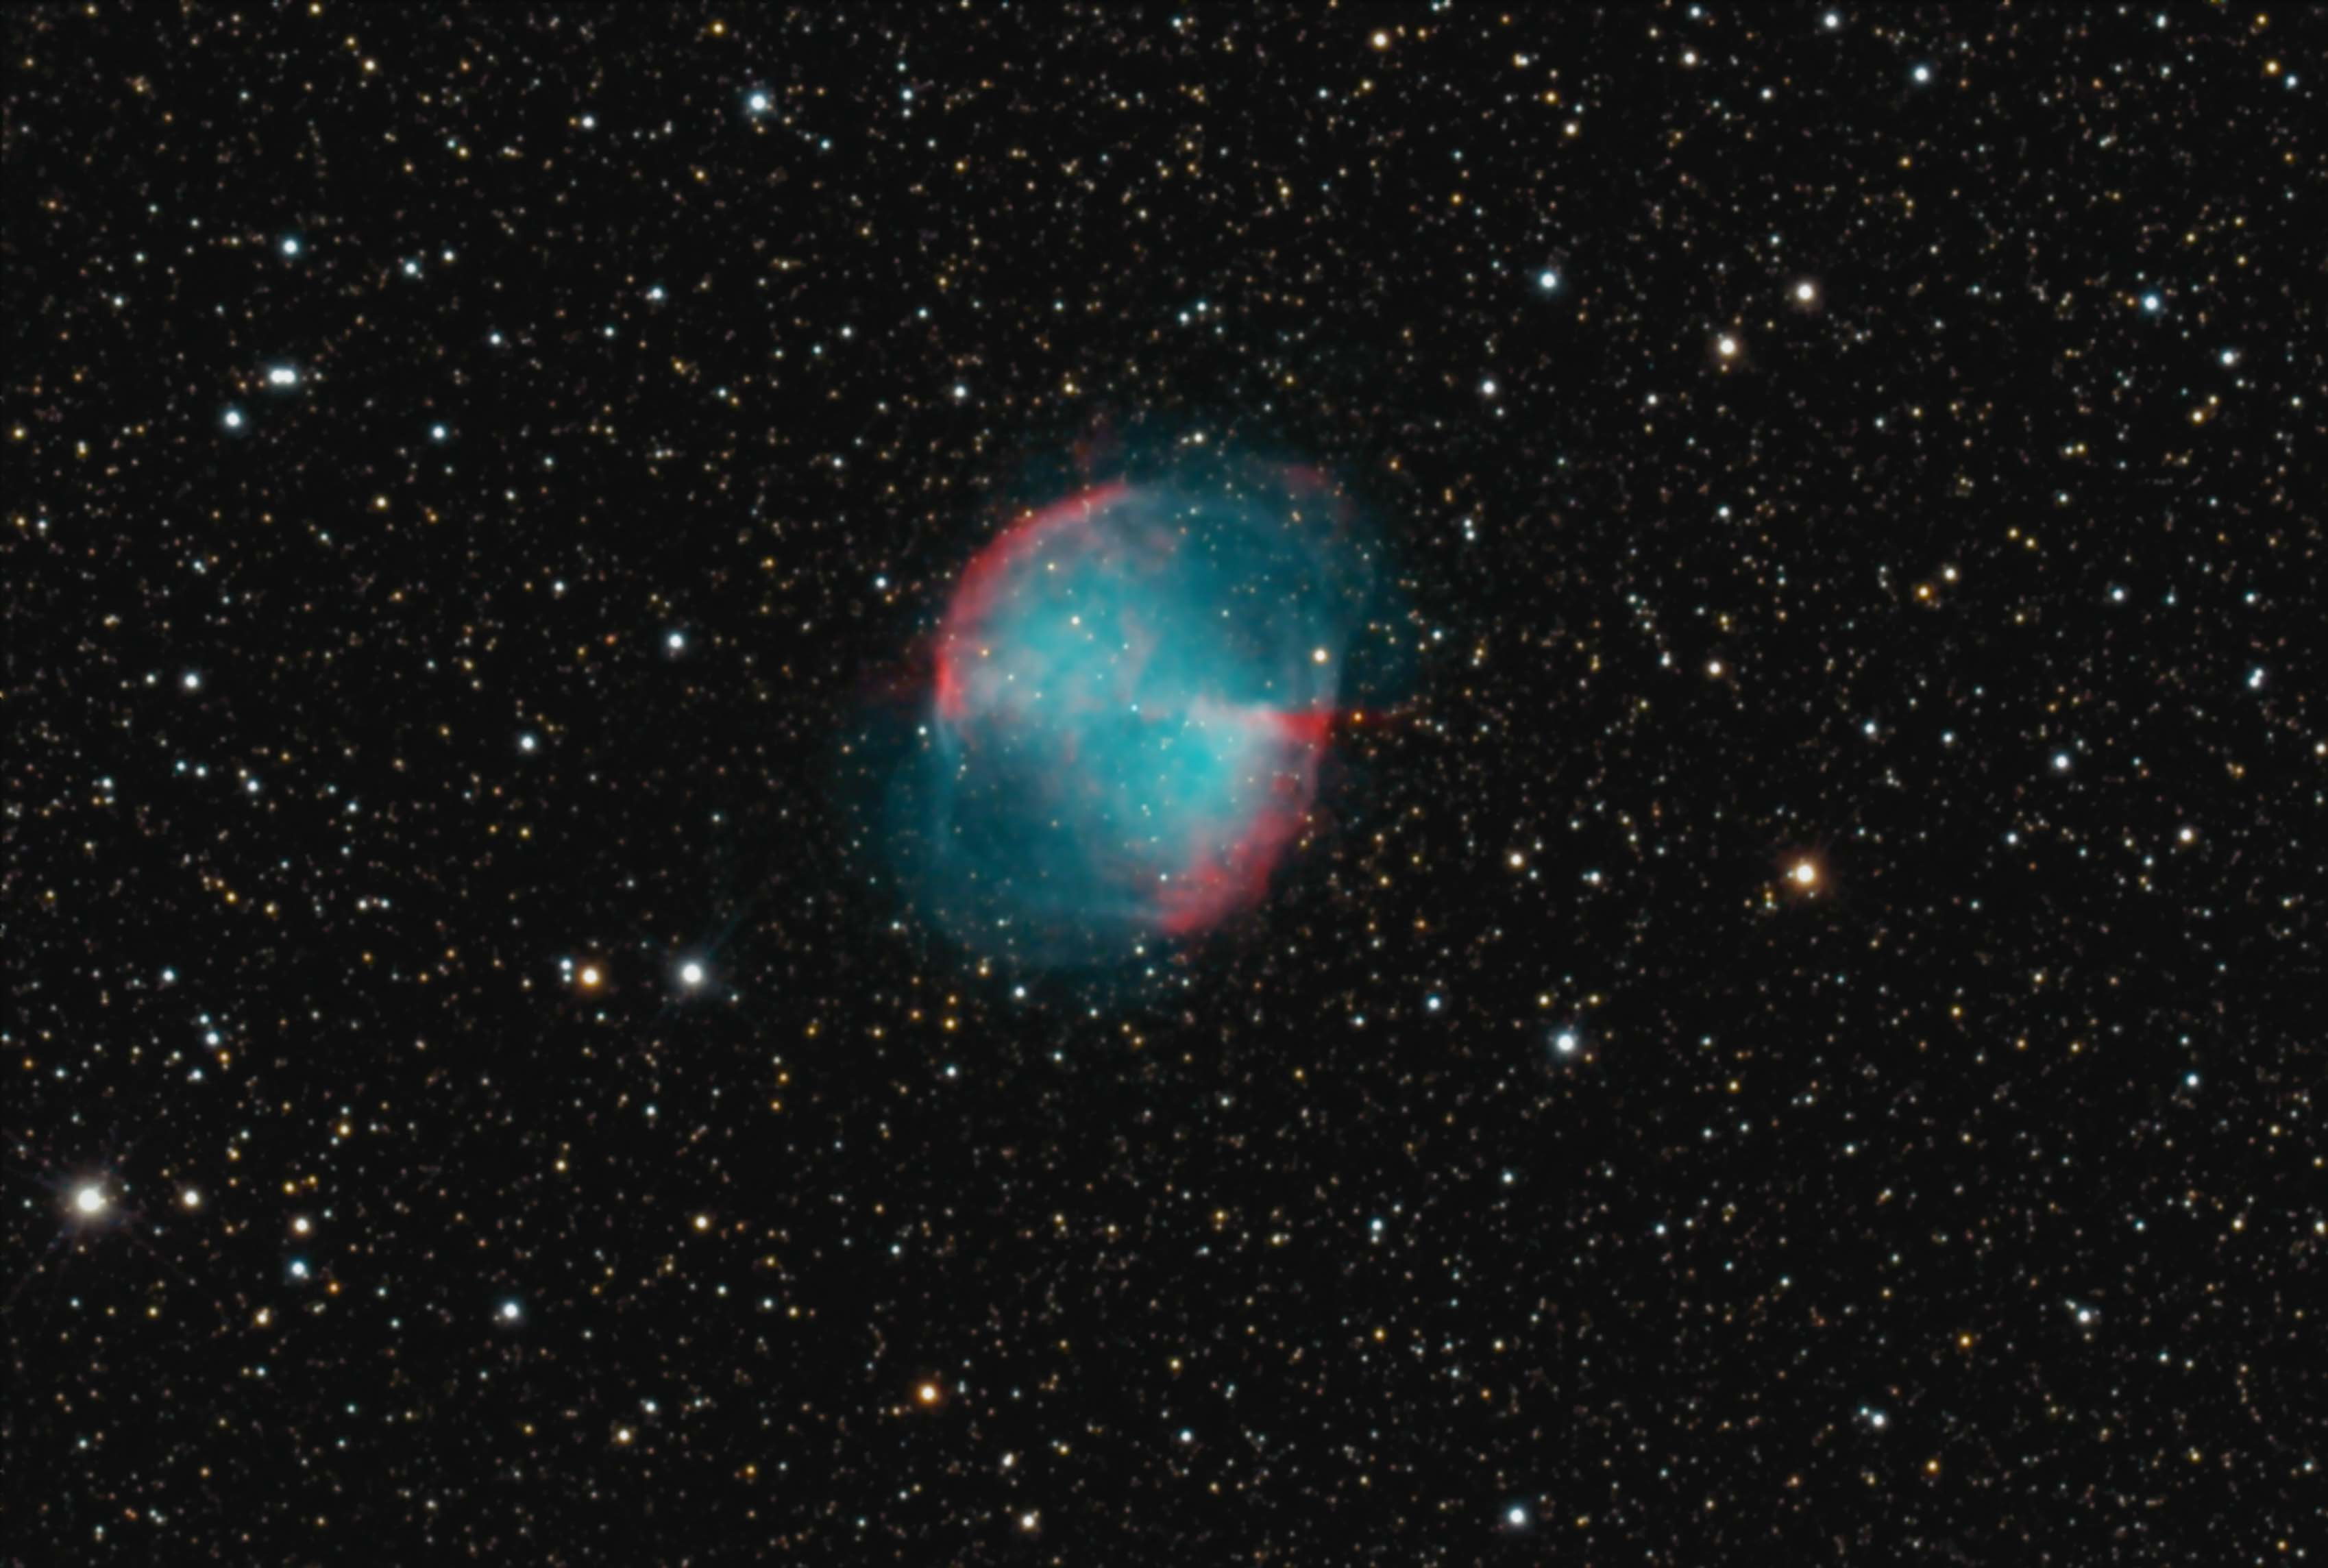 M27 Resolution 1148x763